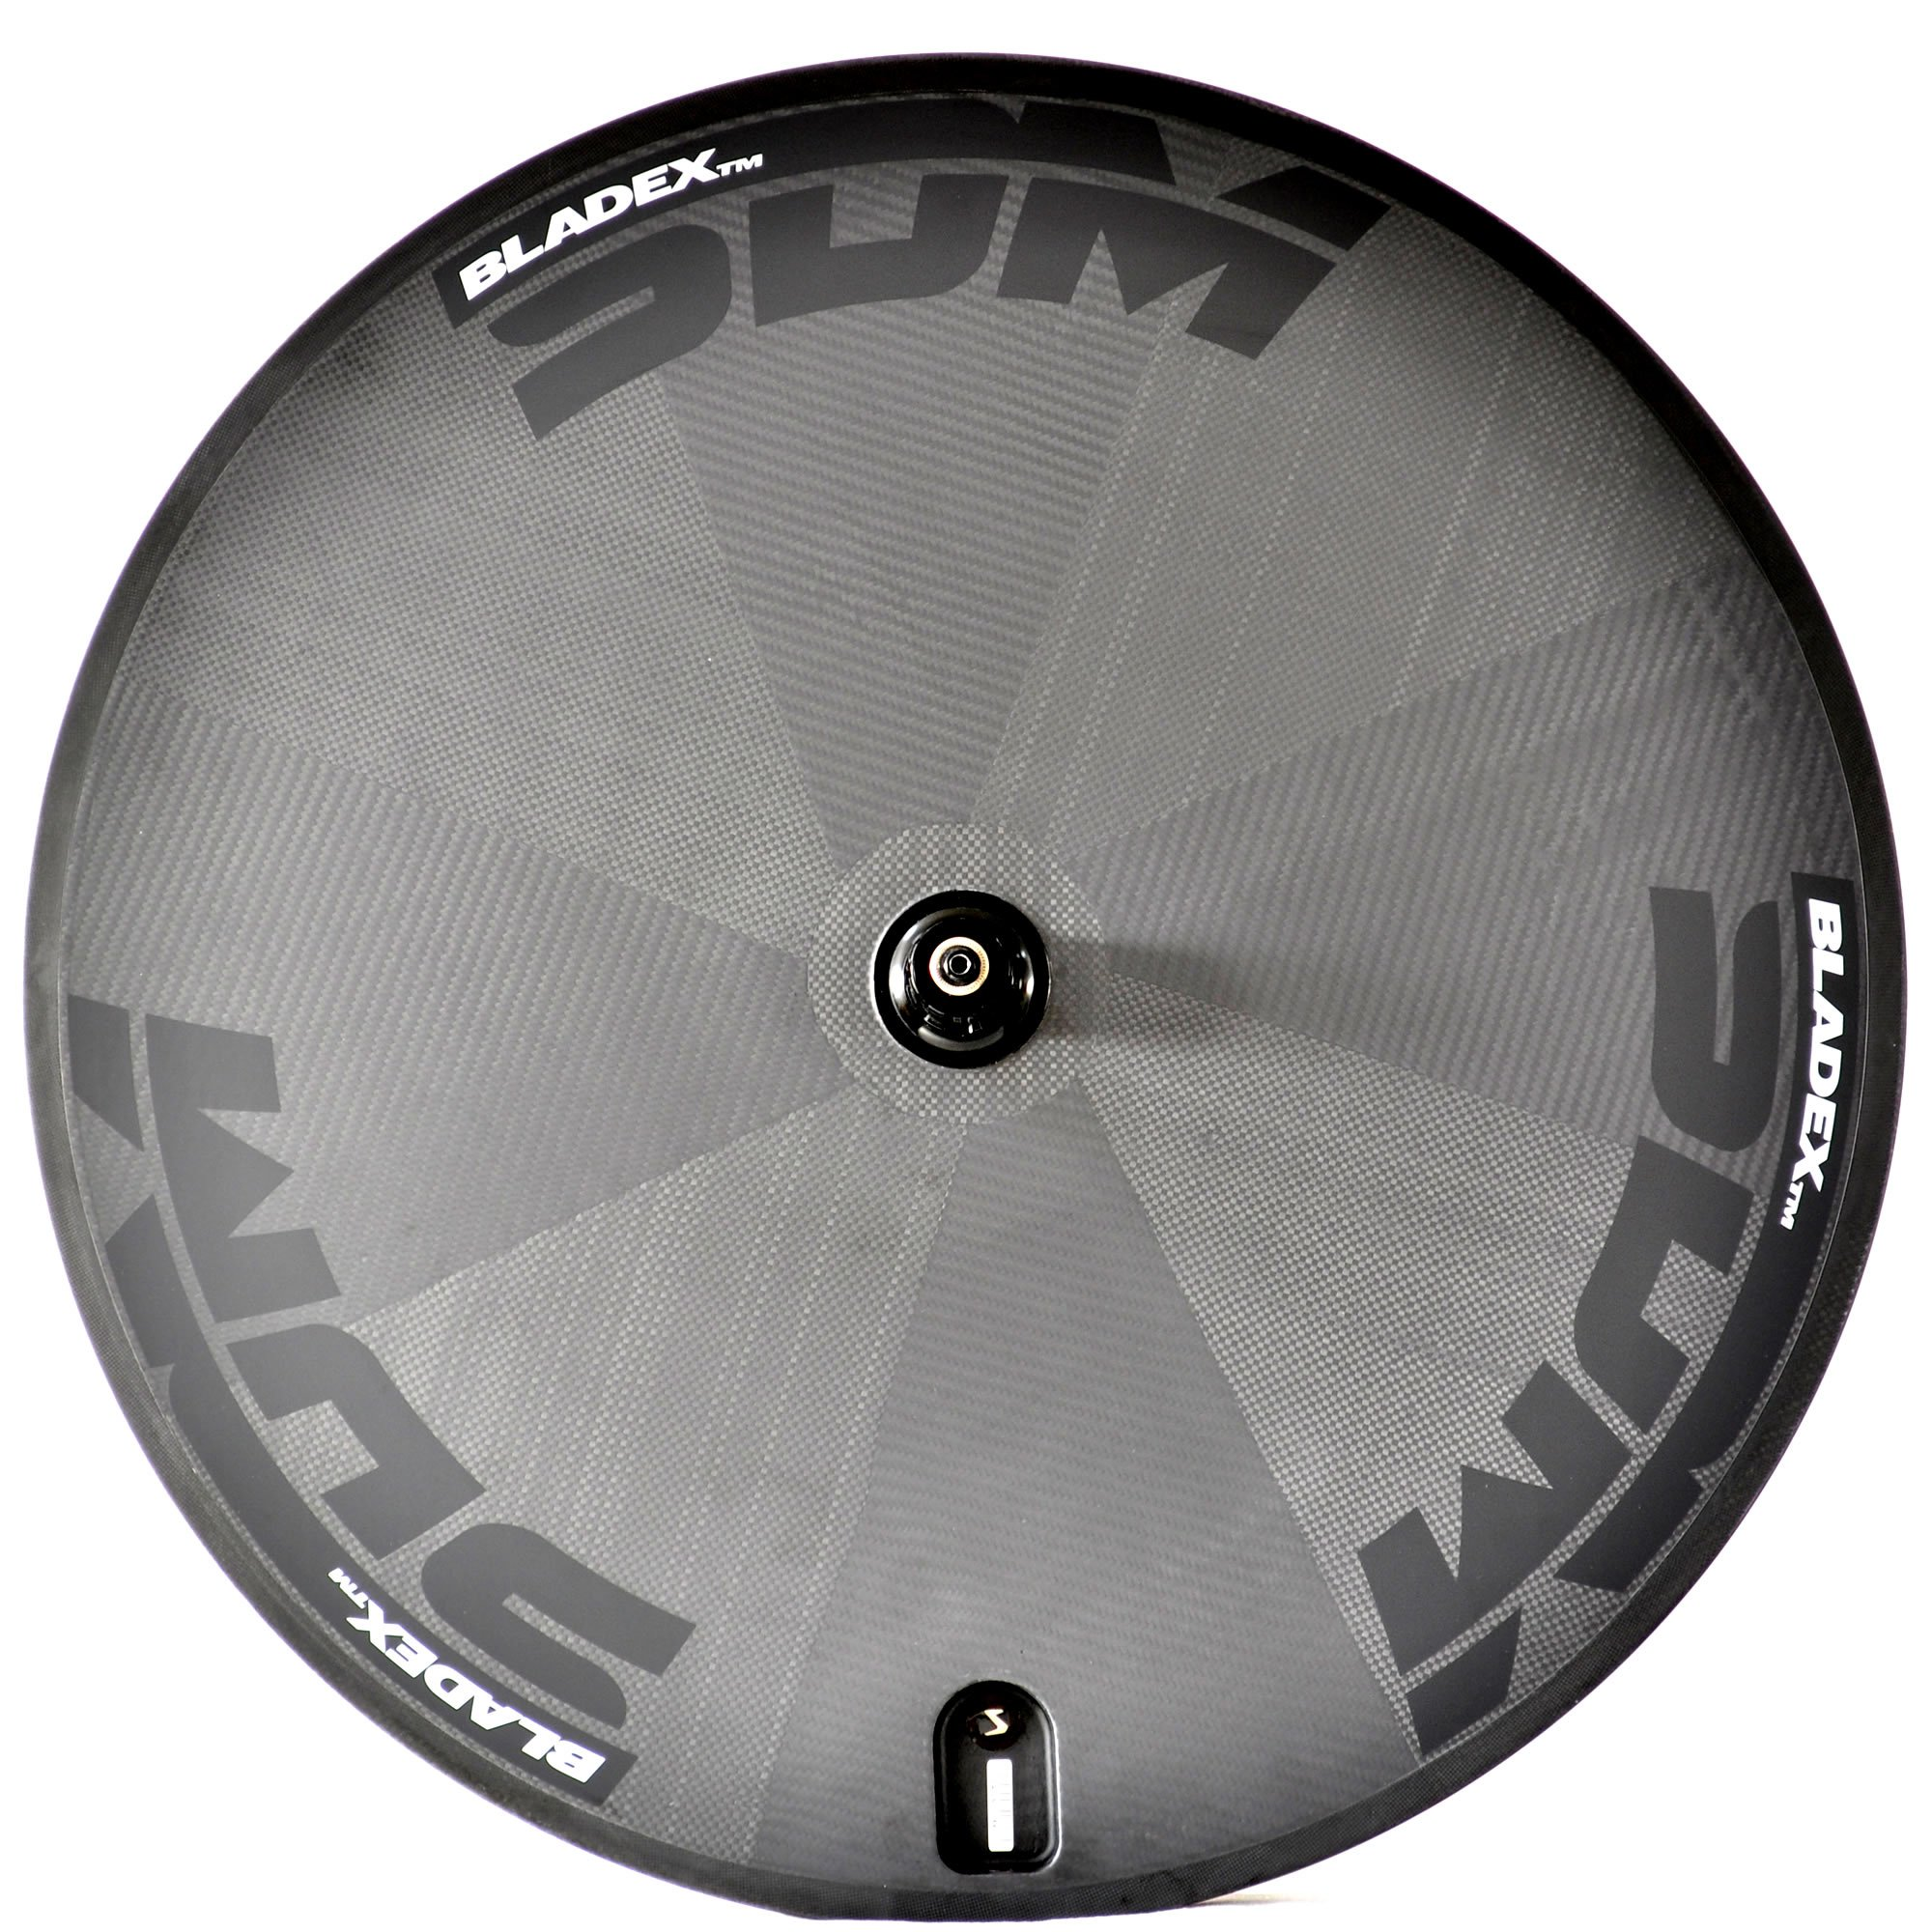 BladeX SDM Disc Wheel White Decals For Triathlon And Time Trial Bikes